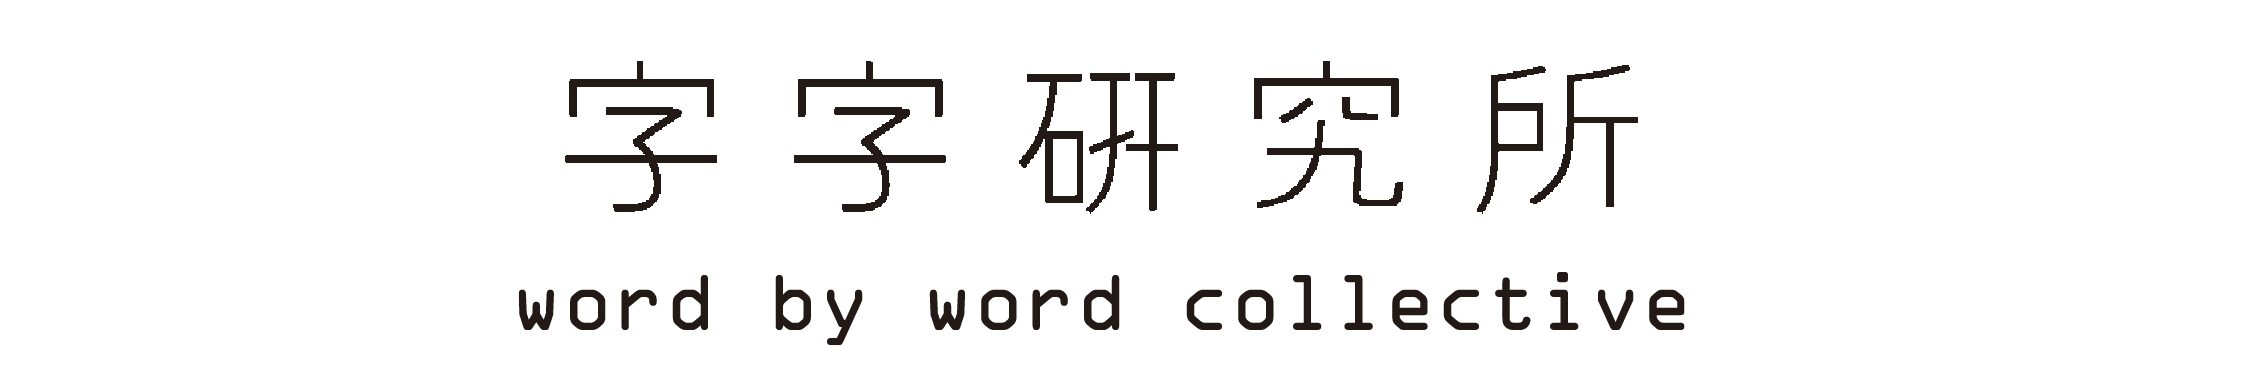 字字研究所 word by word collective